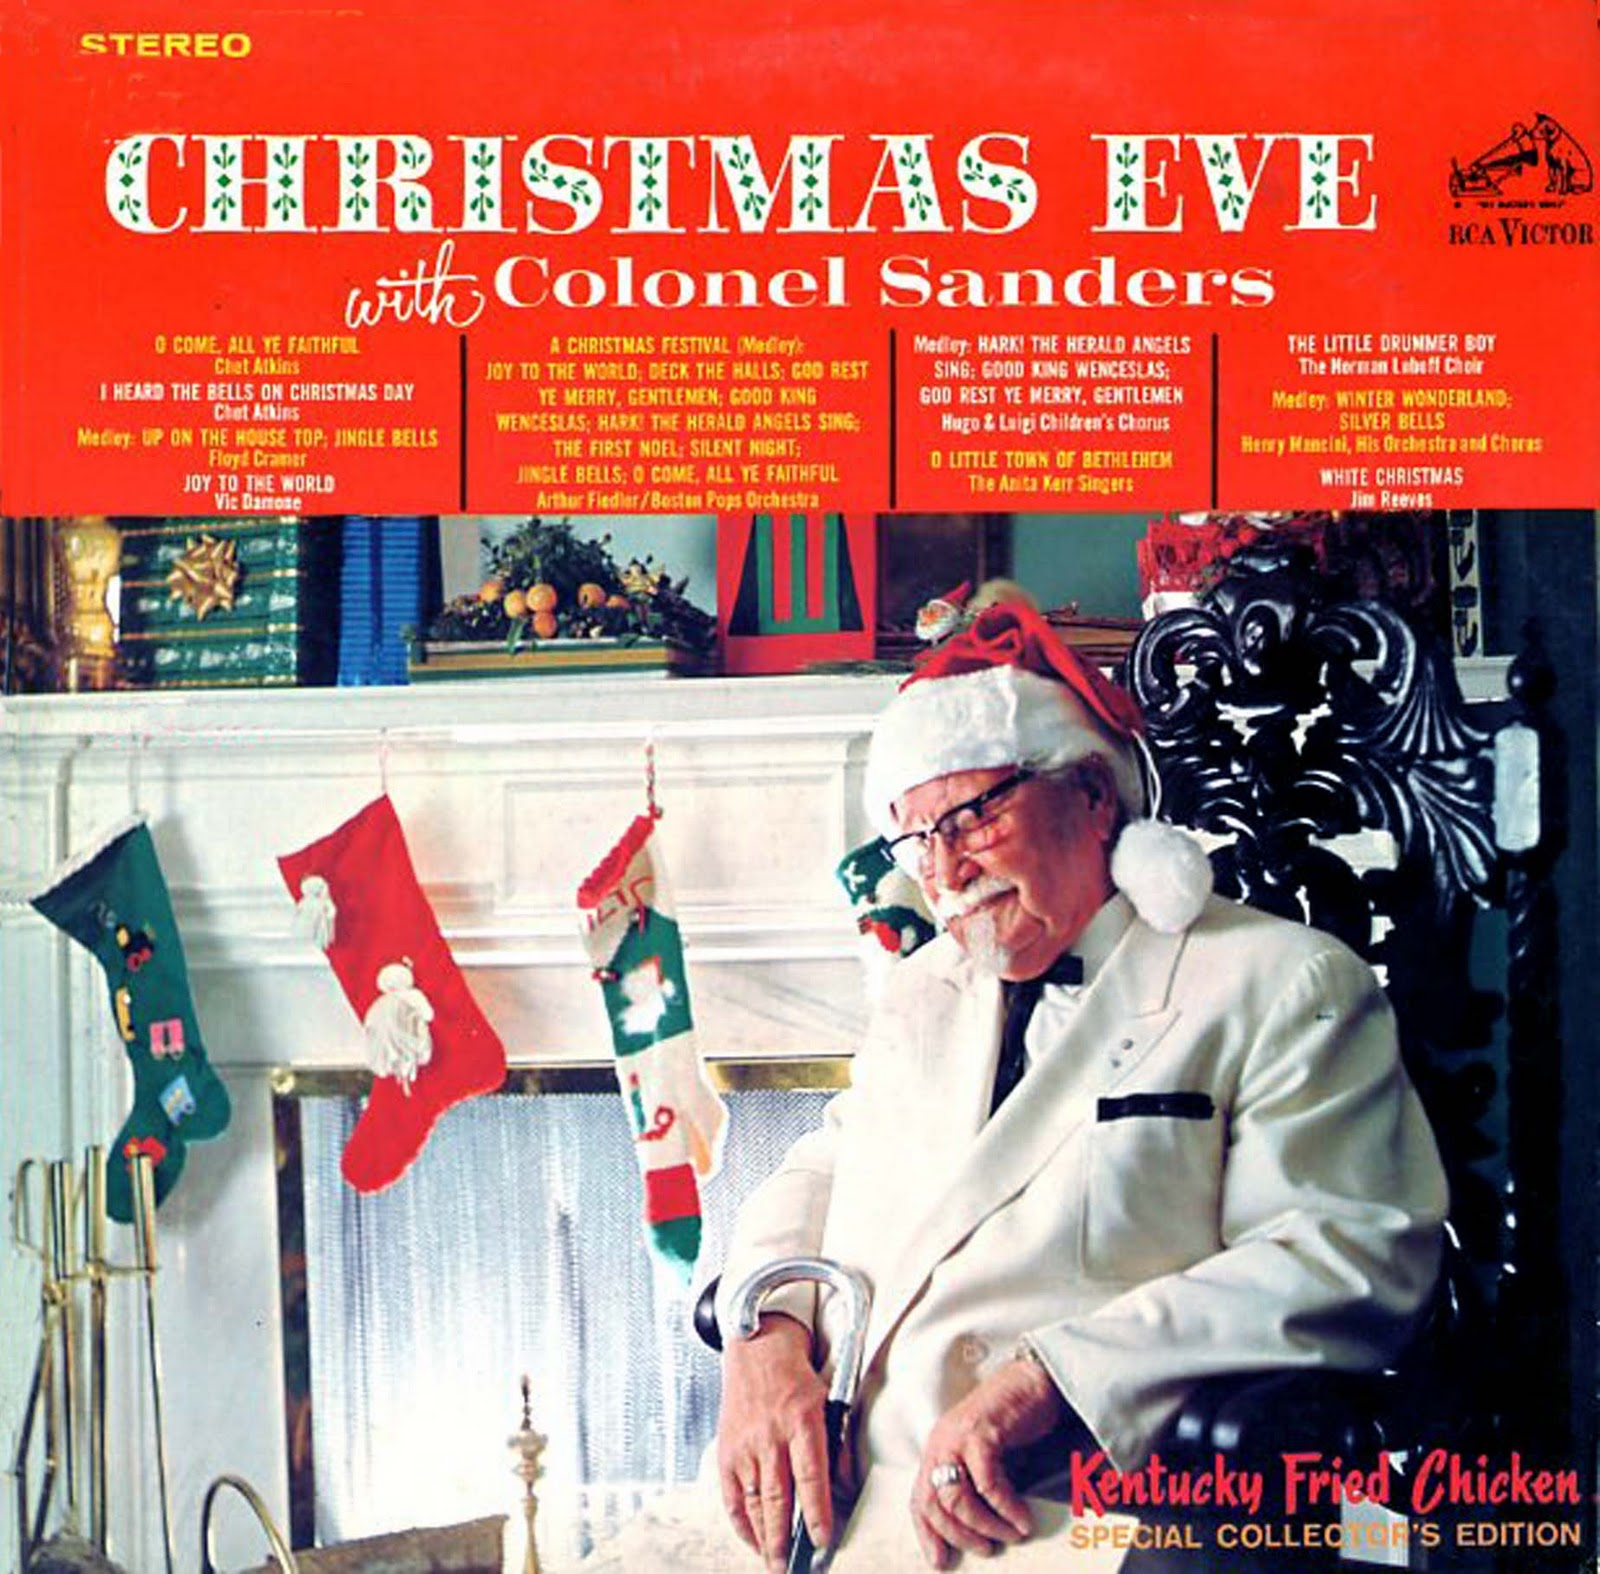 History S Dumpster The Colonel Sanders Christmas Albums